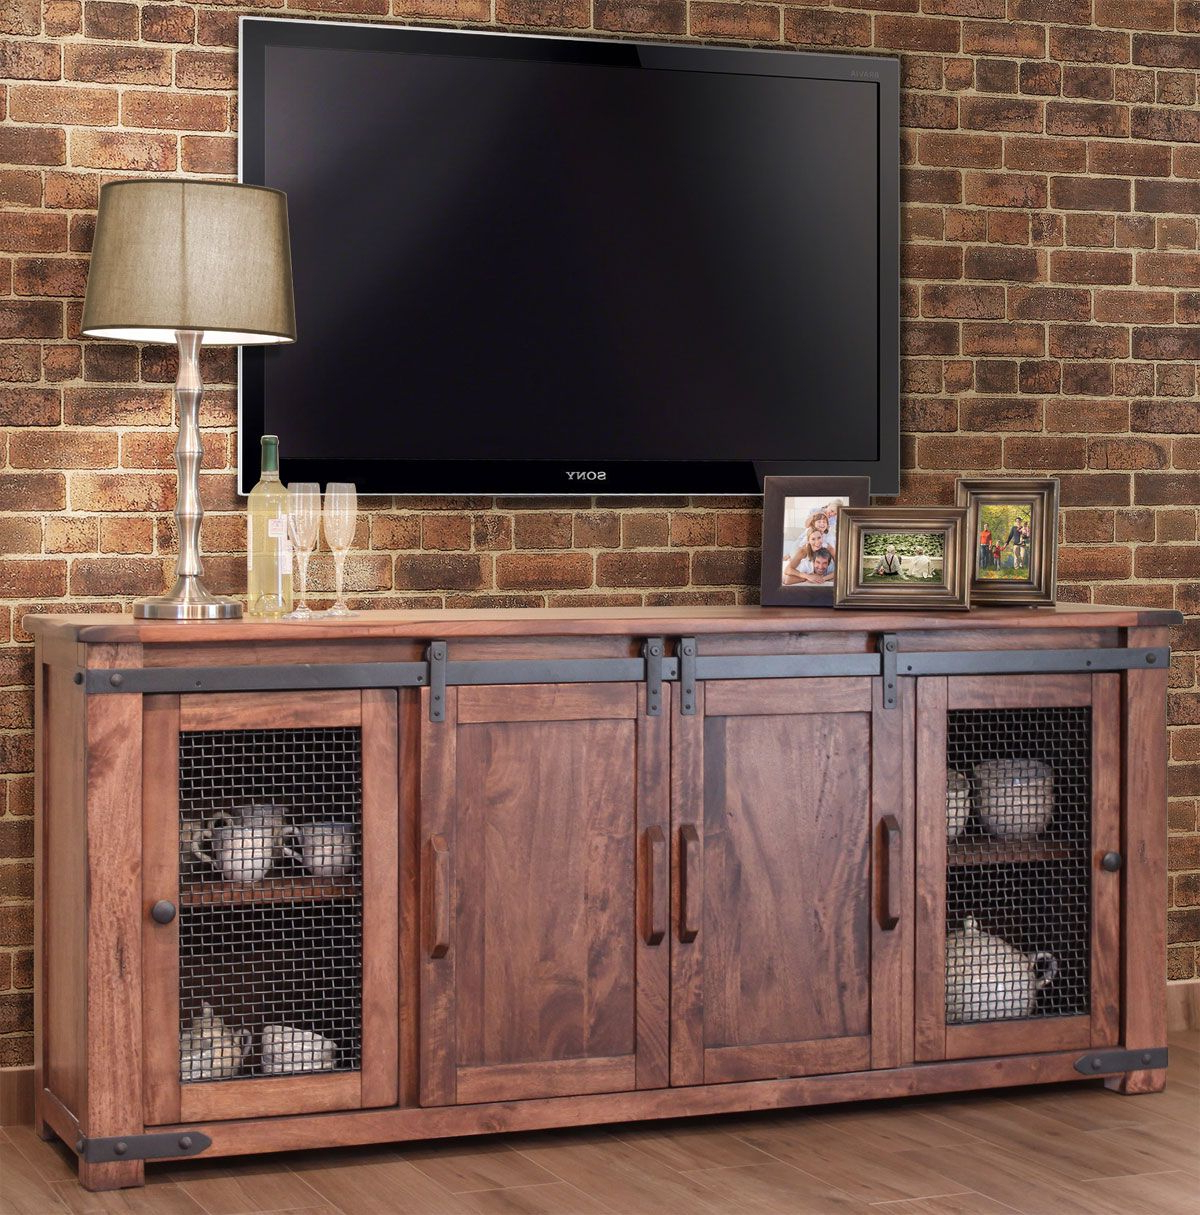 19 Amazing Diy Tv Stand Ideas You Can Build Right Now | Rustic In Laurent 50 Inch Tv Stands (View 4 of 20)